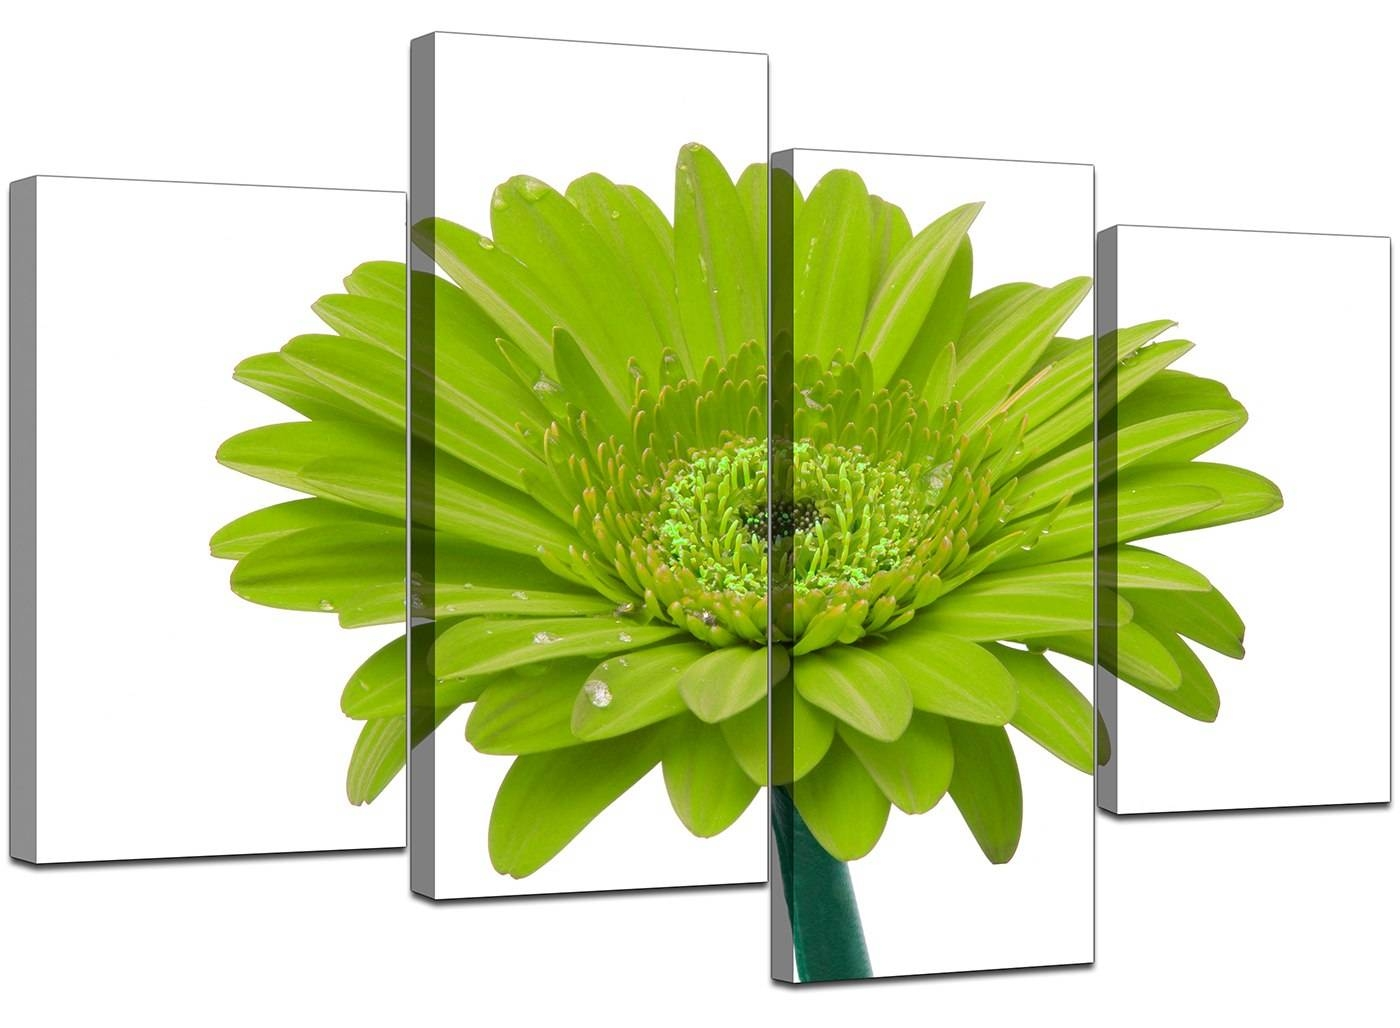 Canvas Wall Art Of Flower In Lime Green For Your Living Room With Regard To Latest Lime Green Wall Art (View 7 of 20)